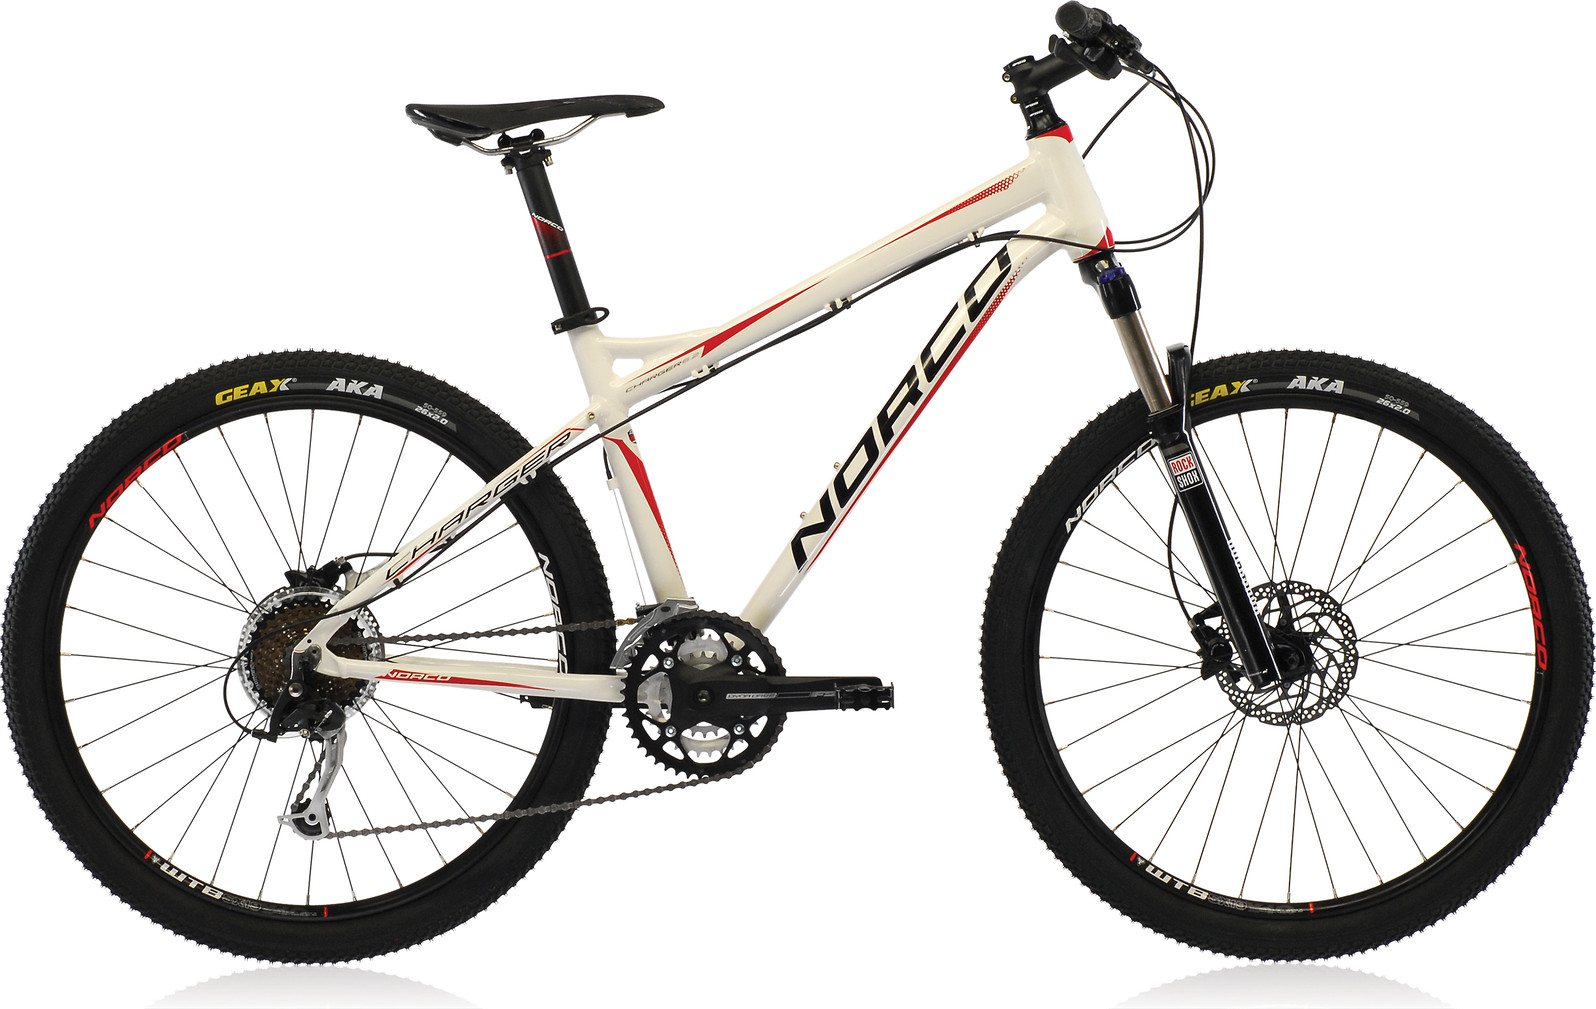 2013 Norco Charger 6.2 Bike charger-62-1